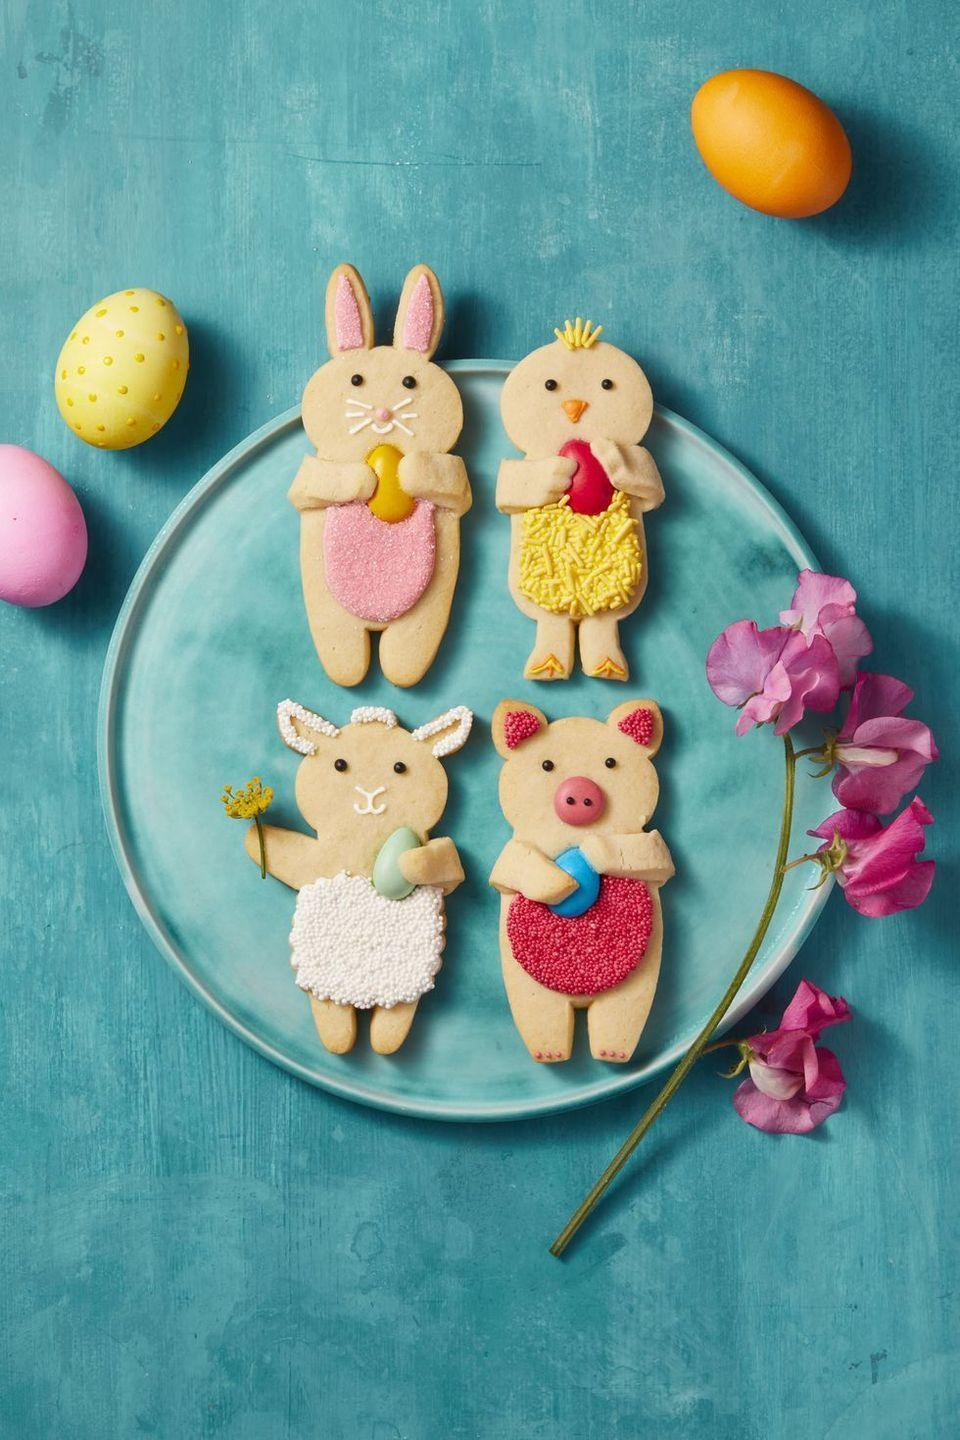 """<p>What says """"Easter"""" more than cookies shaped as adorable farm animals? These cute animal treats made from classic vanilla sugar cookie dough are easily dressed up with colorful frosting (and sprinkles!). </p><p><em><a href=""""https://www.goodhousekeeping.com/food-recipes/a41691/vanilla-sugar-dough-recipe/"""" rel=""""nofollow noopener"""" target=""""_blank"""" data-ylk=""""slk:Get the recipe for Easter Vanilla Sugar Cookies »"""" class=""""link rapid-noclick-resp"""">Get the recipe for Easter Vanilla Sugar Cookies »</a></em></p><p><strong>RELATED: </strong><a href=""""https://www.goodhousekeeping.com/holidays/easter-ideas/g26557097/easy-easter-desserts/"""" rel=""""nofollow noopener"""" target=""""_blank"""" data-ylk=""""slk:50+ Easy Easter Desserts That Celebrate Spring In a Big Way"""" class=""""link rapid-noclick-resp"""">50+ Easy Easter Desserts That Celebrate Spring In a Big Way</a></p>"""